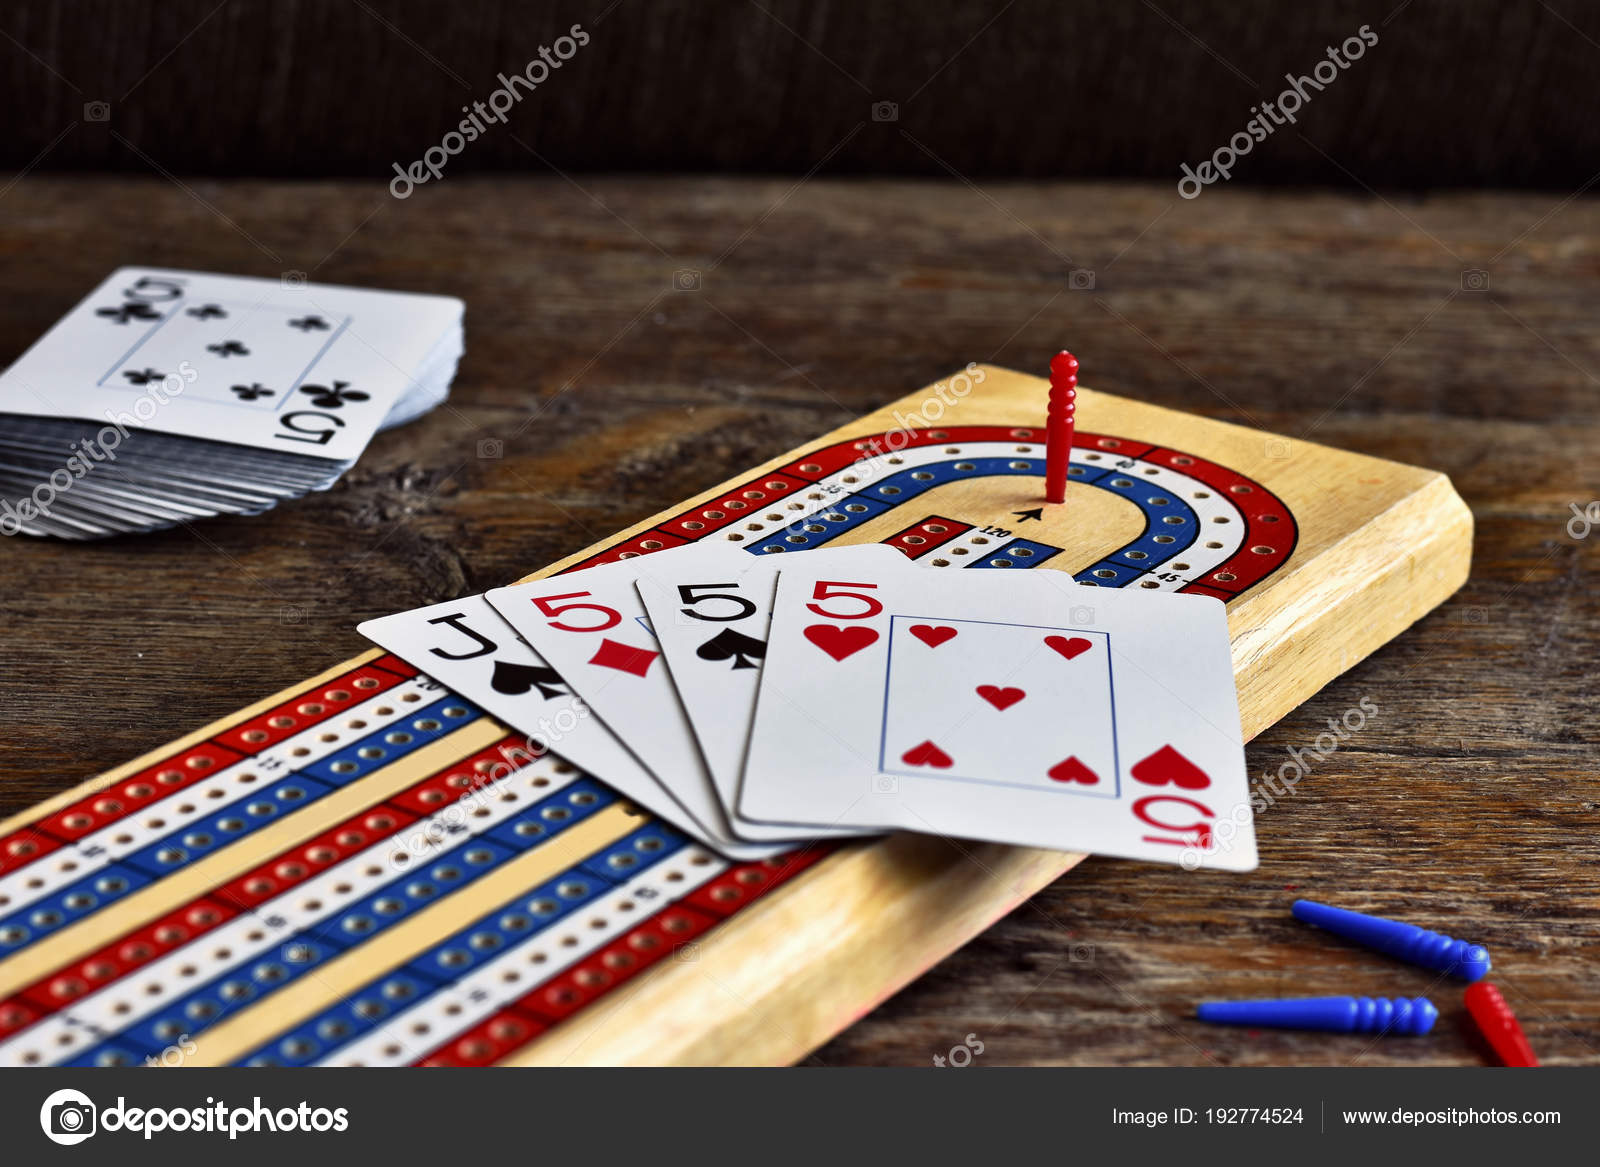 Close Image Wooden Cribbage Board Cribbage Pegs Playing